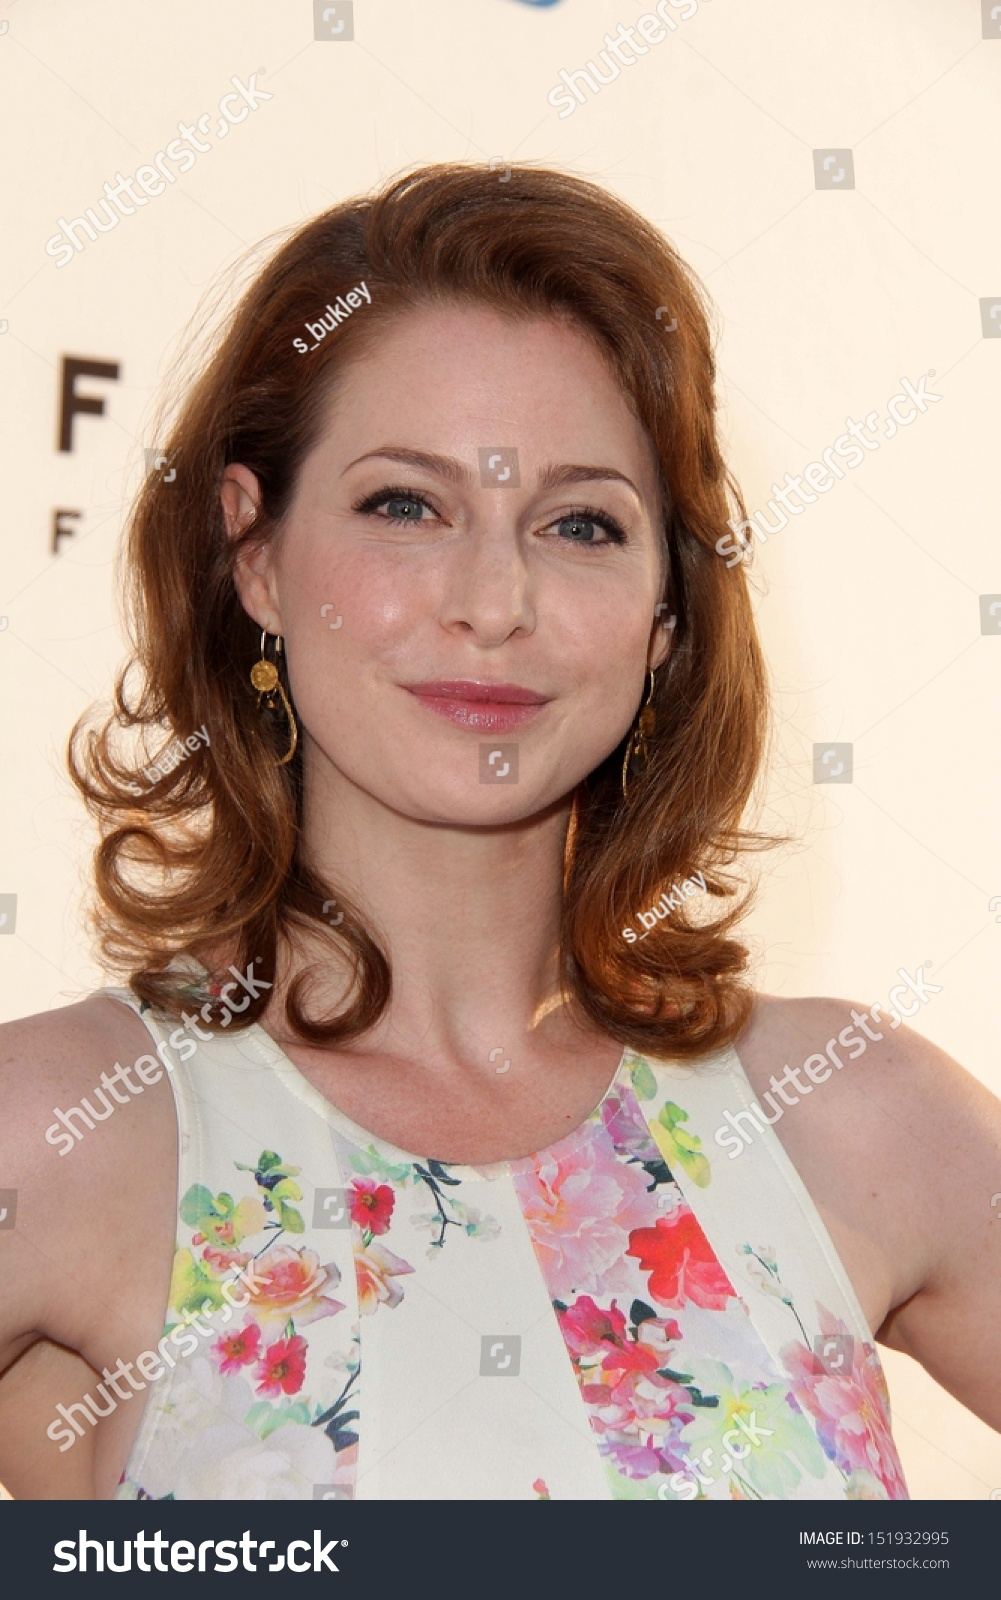 Esme Bianco Hot for esme bianco the worlds end los stock photo 151932995 - shutterstock